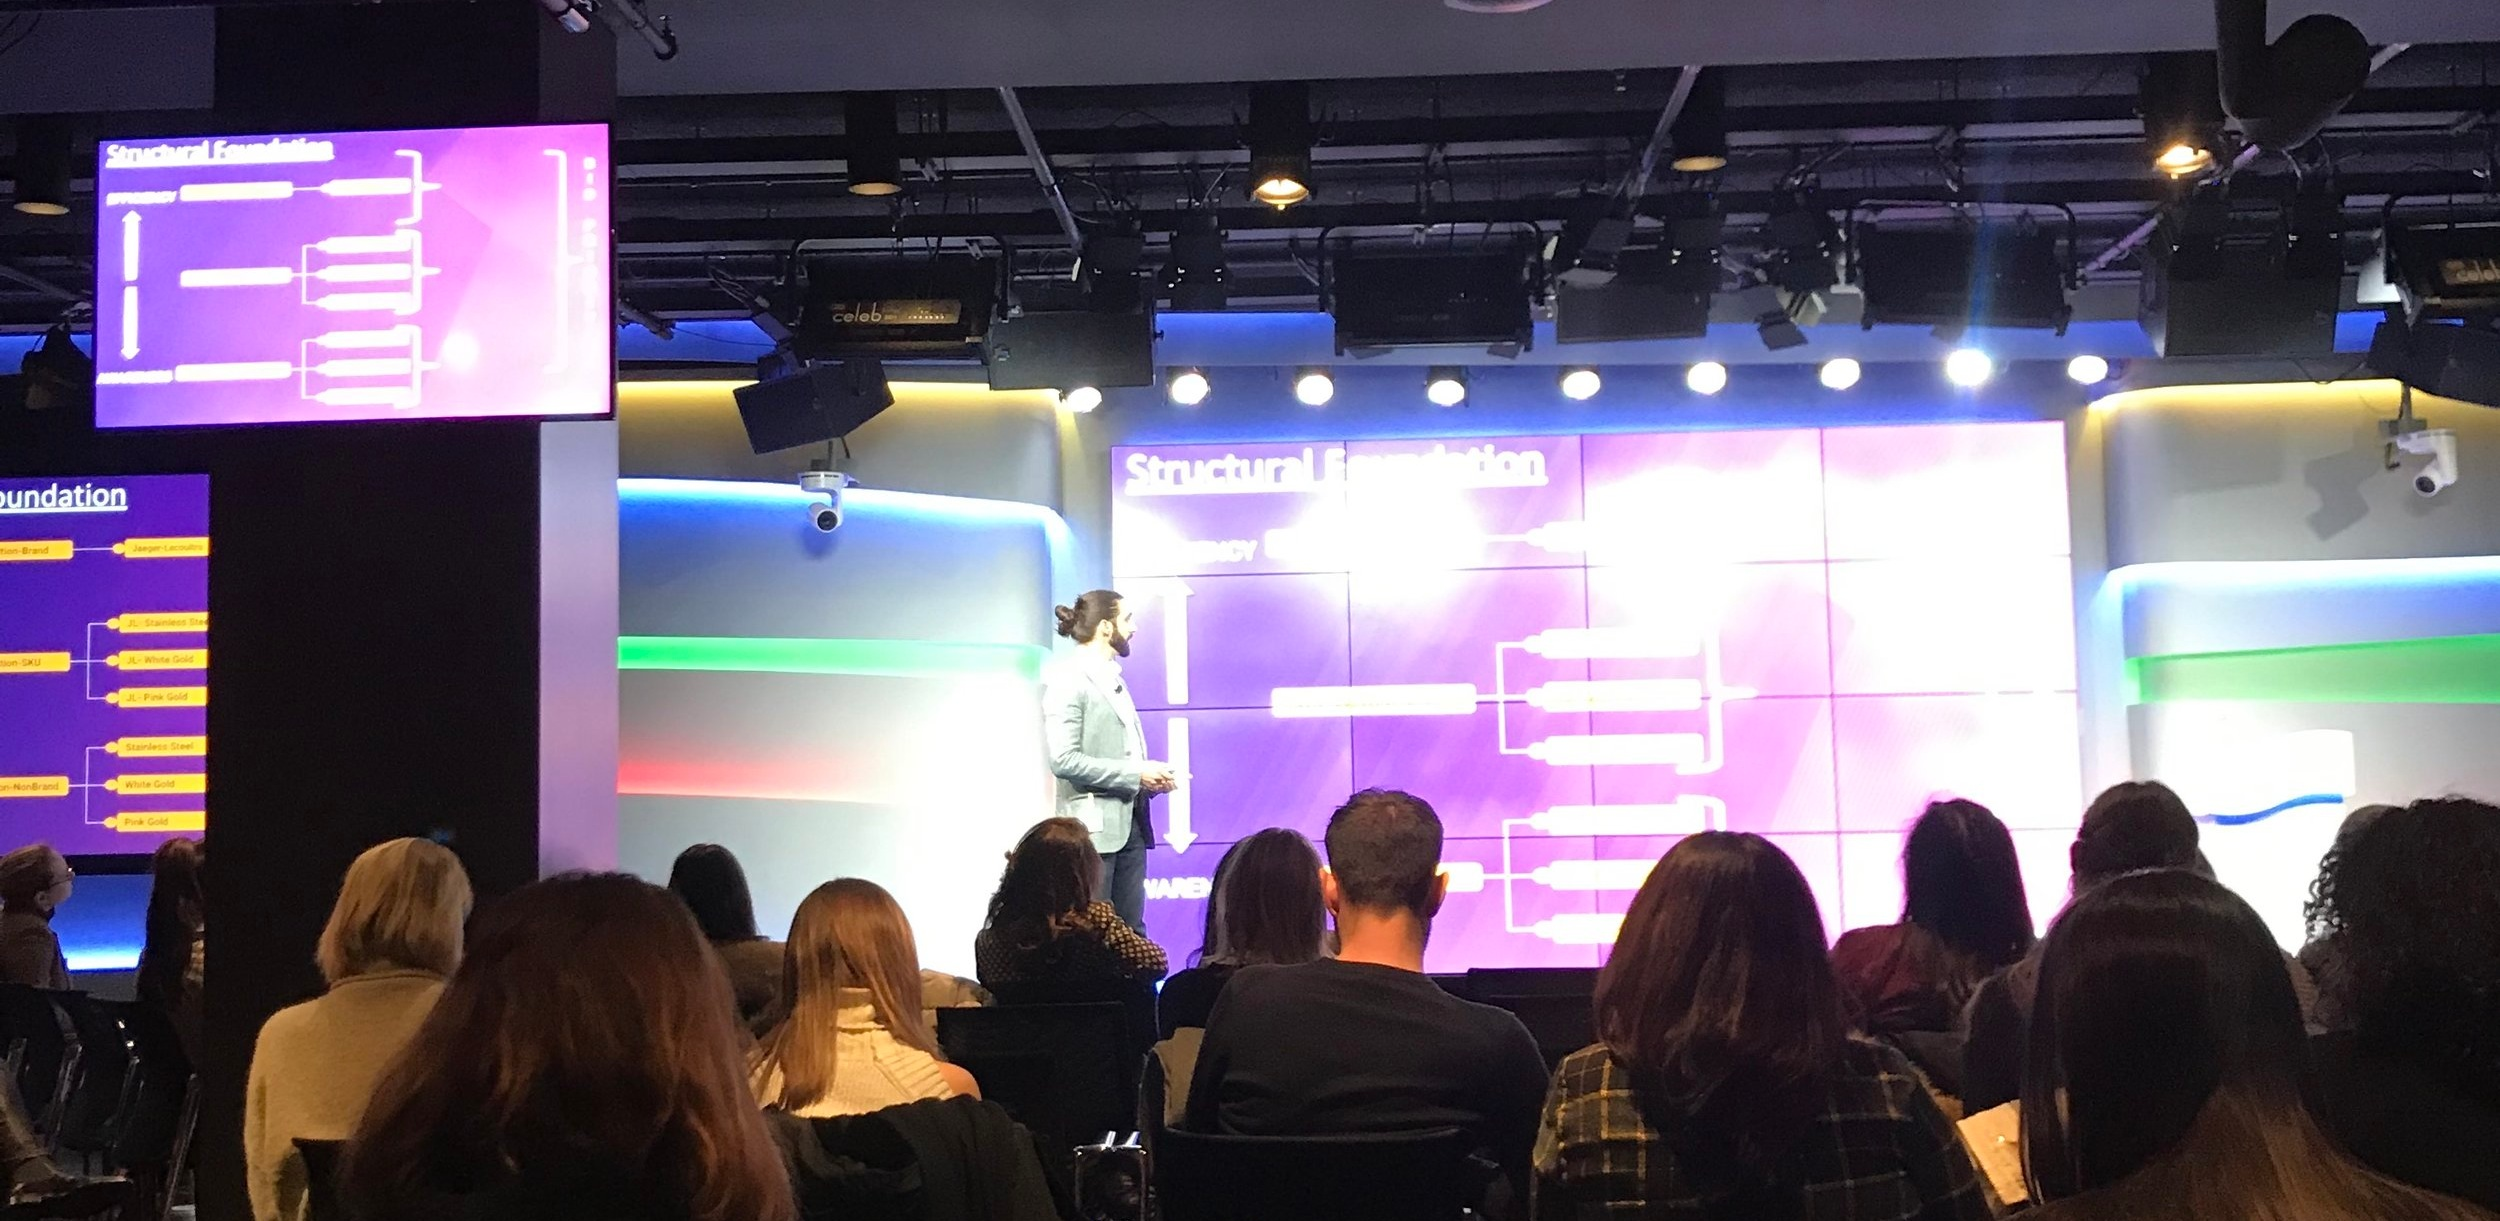 Adrian Padron, Director of Biddable Media, on stage at Google on January 31st, 2019